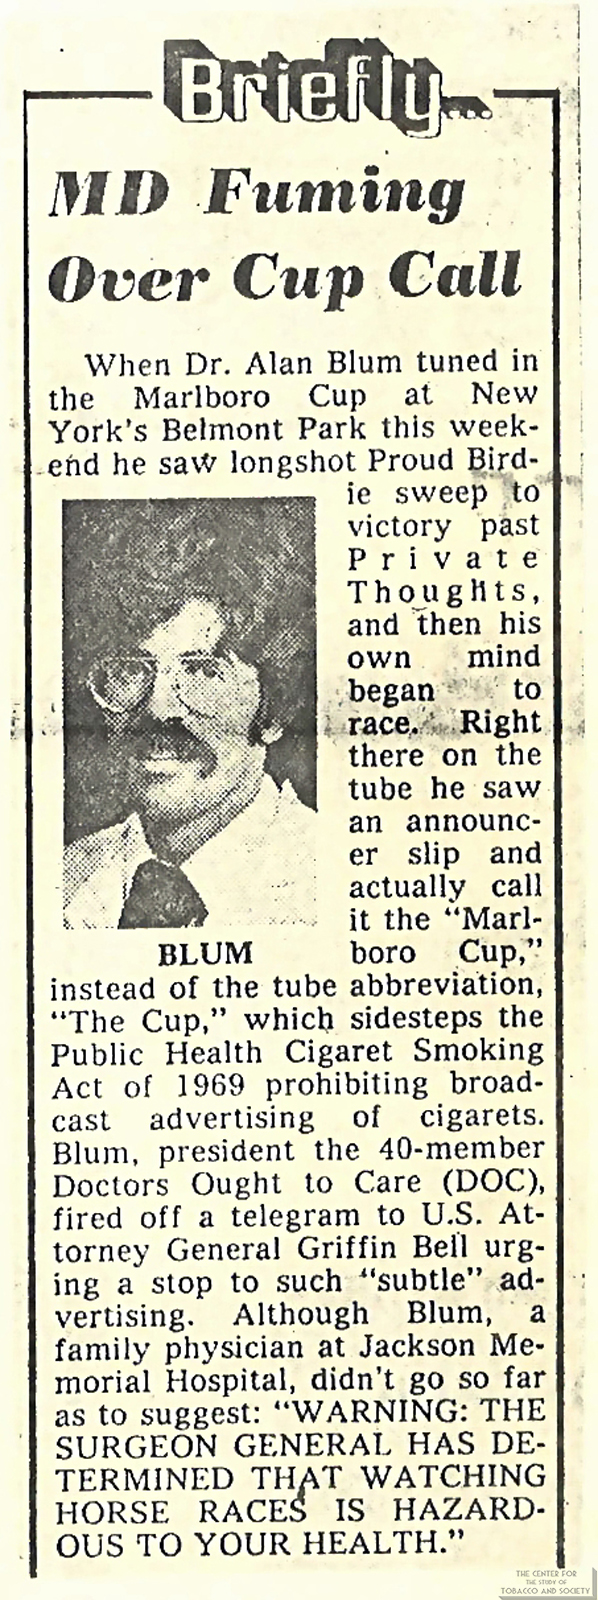 1978 MD Fuming Over Cup Call